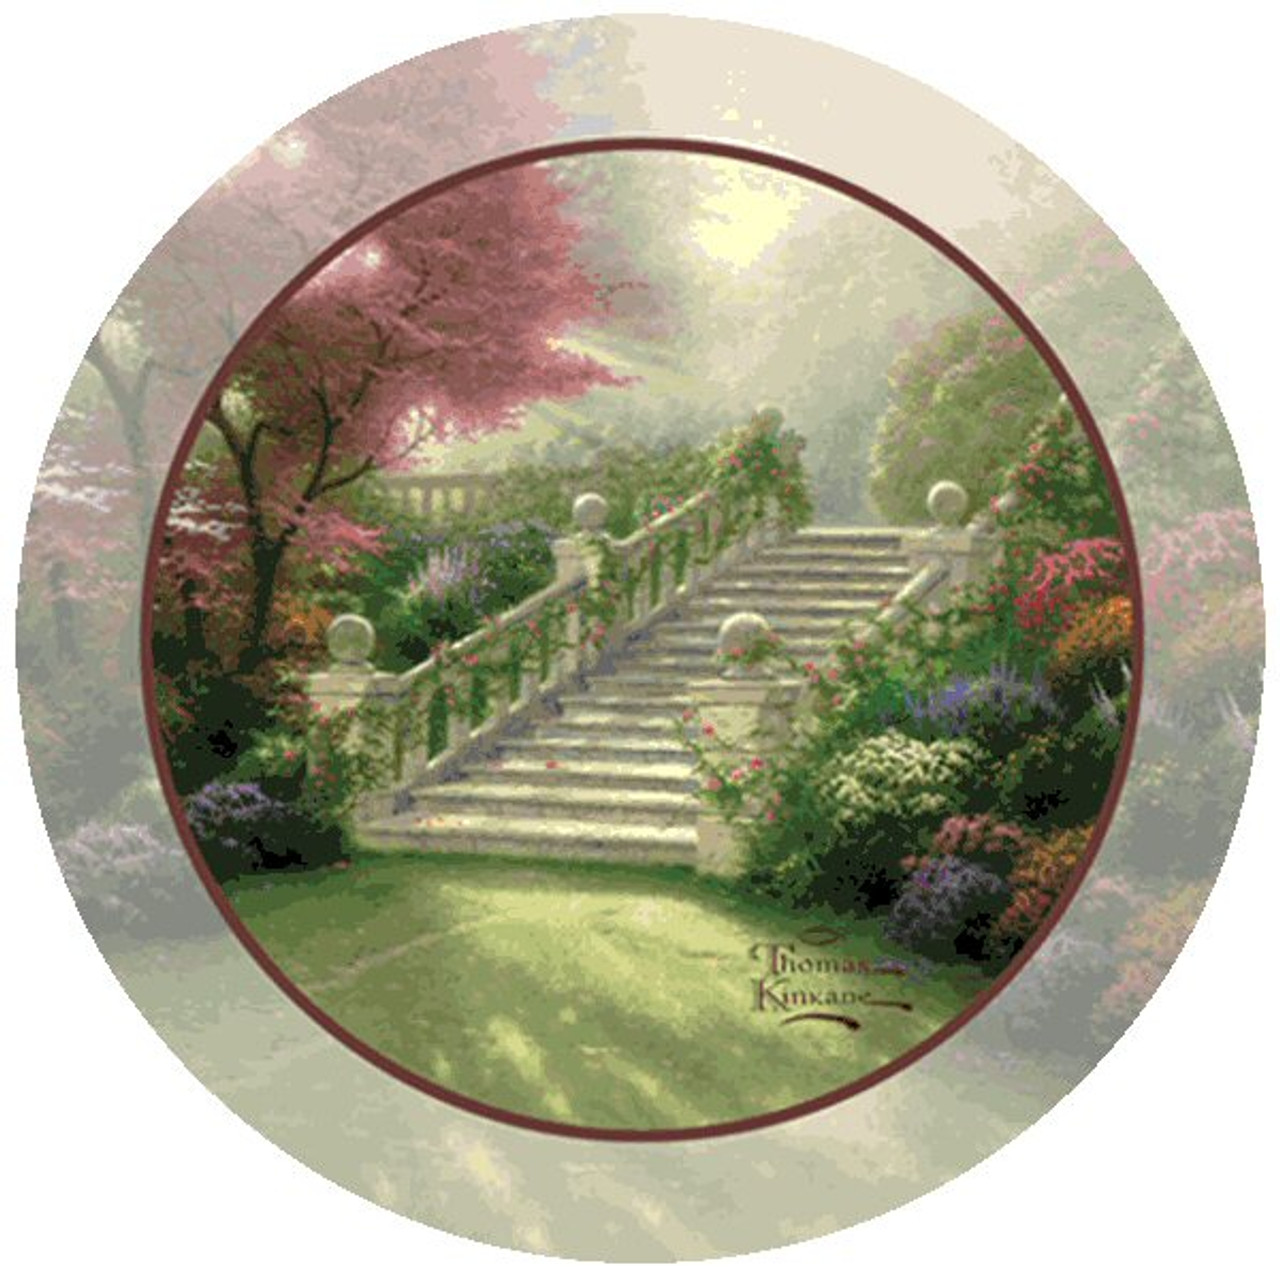 Stairway To Paradise Beverage Coasters By Thomas Kinkade Set Of 8 Drink Coasters Thirstystone